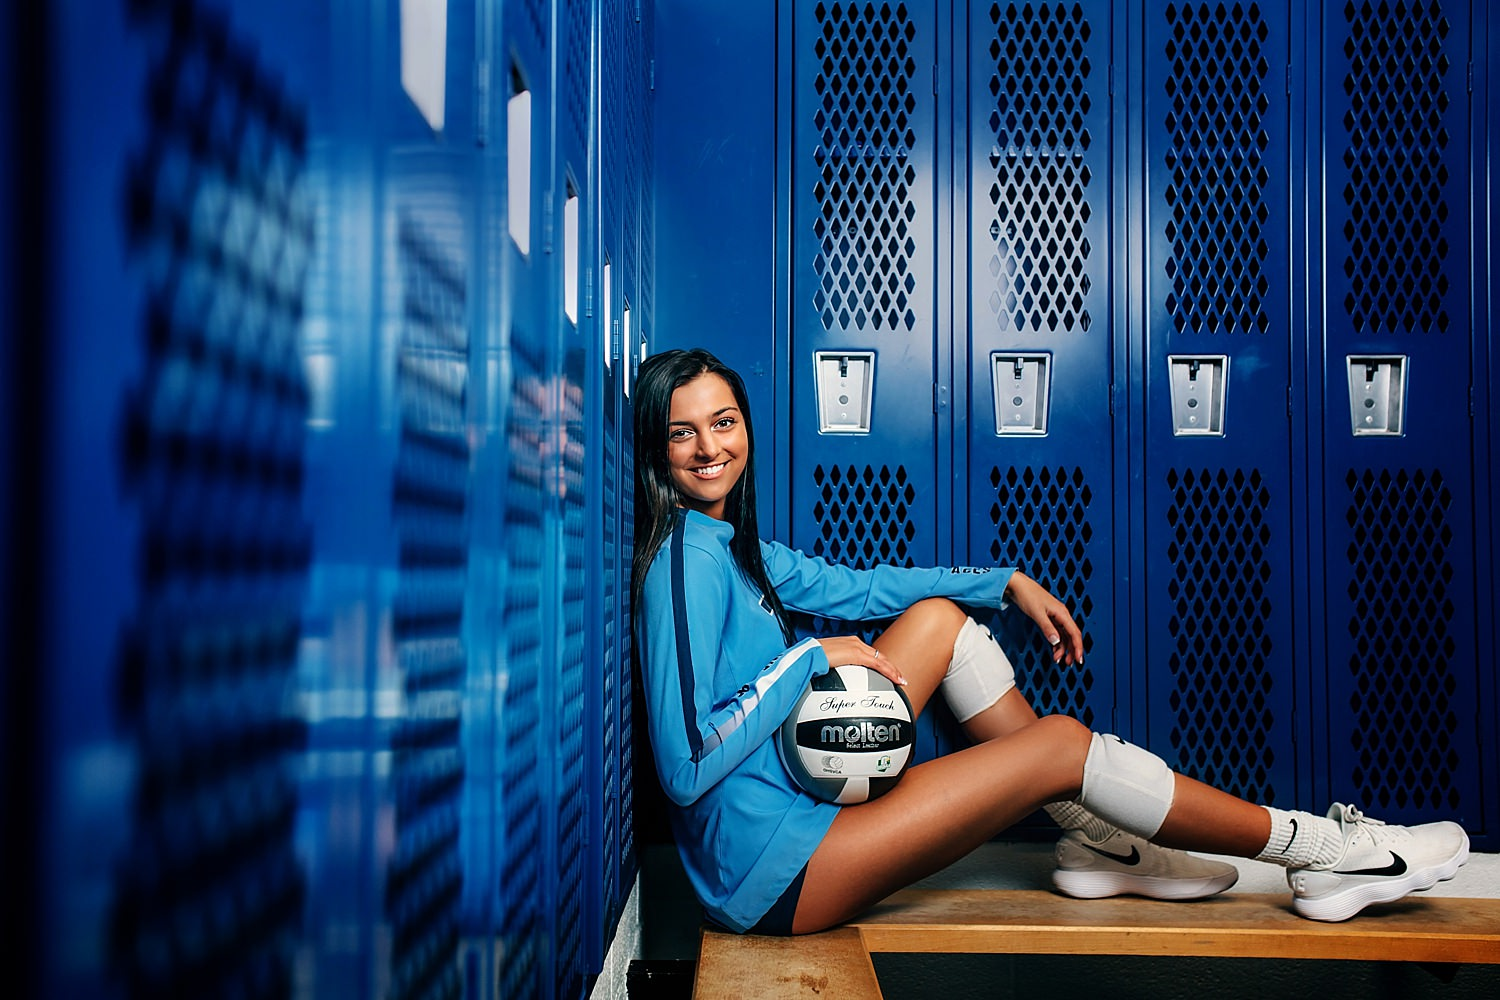 volleyball senior portrait poses with ball in locker room in granville high school